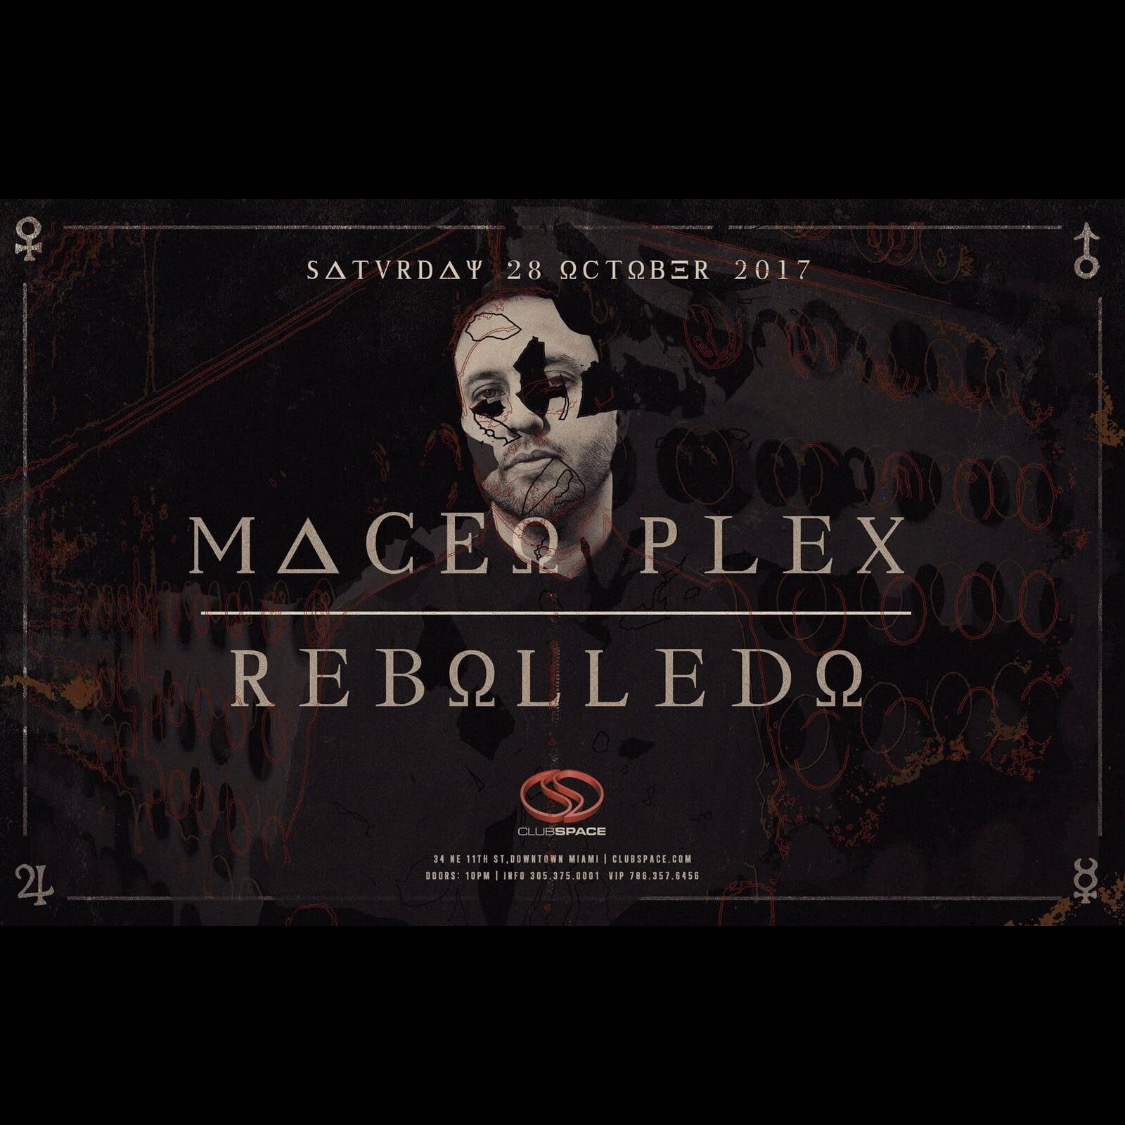 Maceo Plex for Halloween at Space